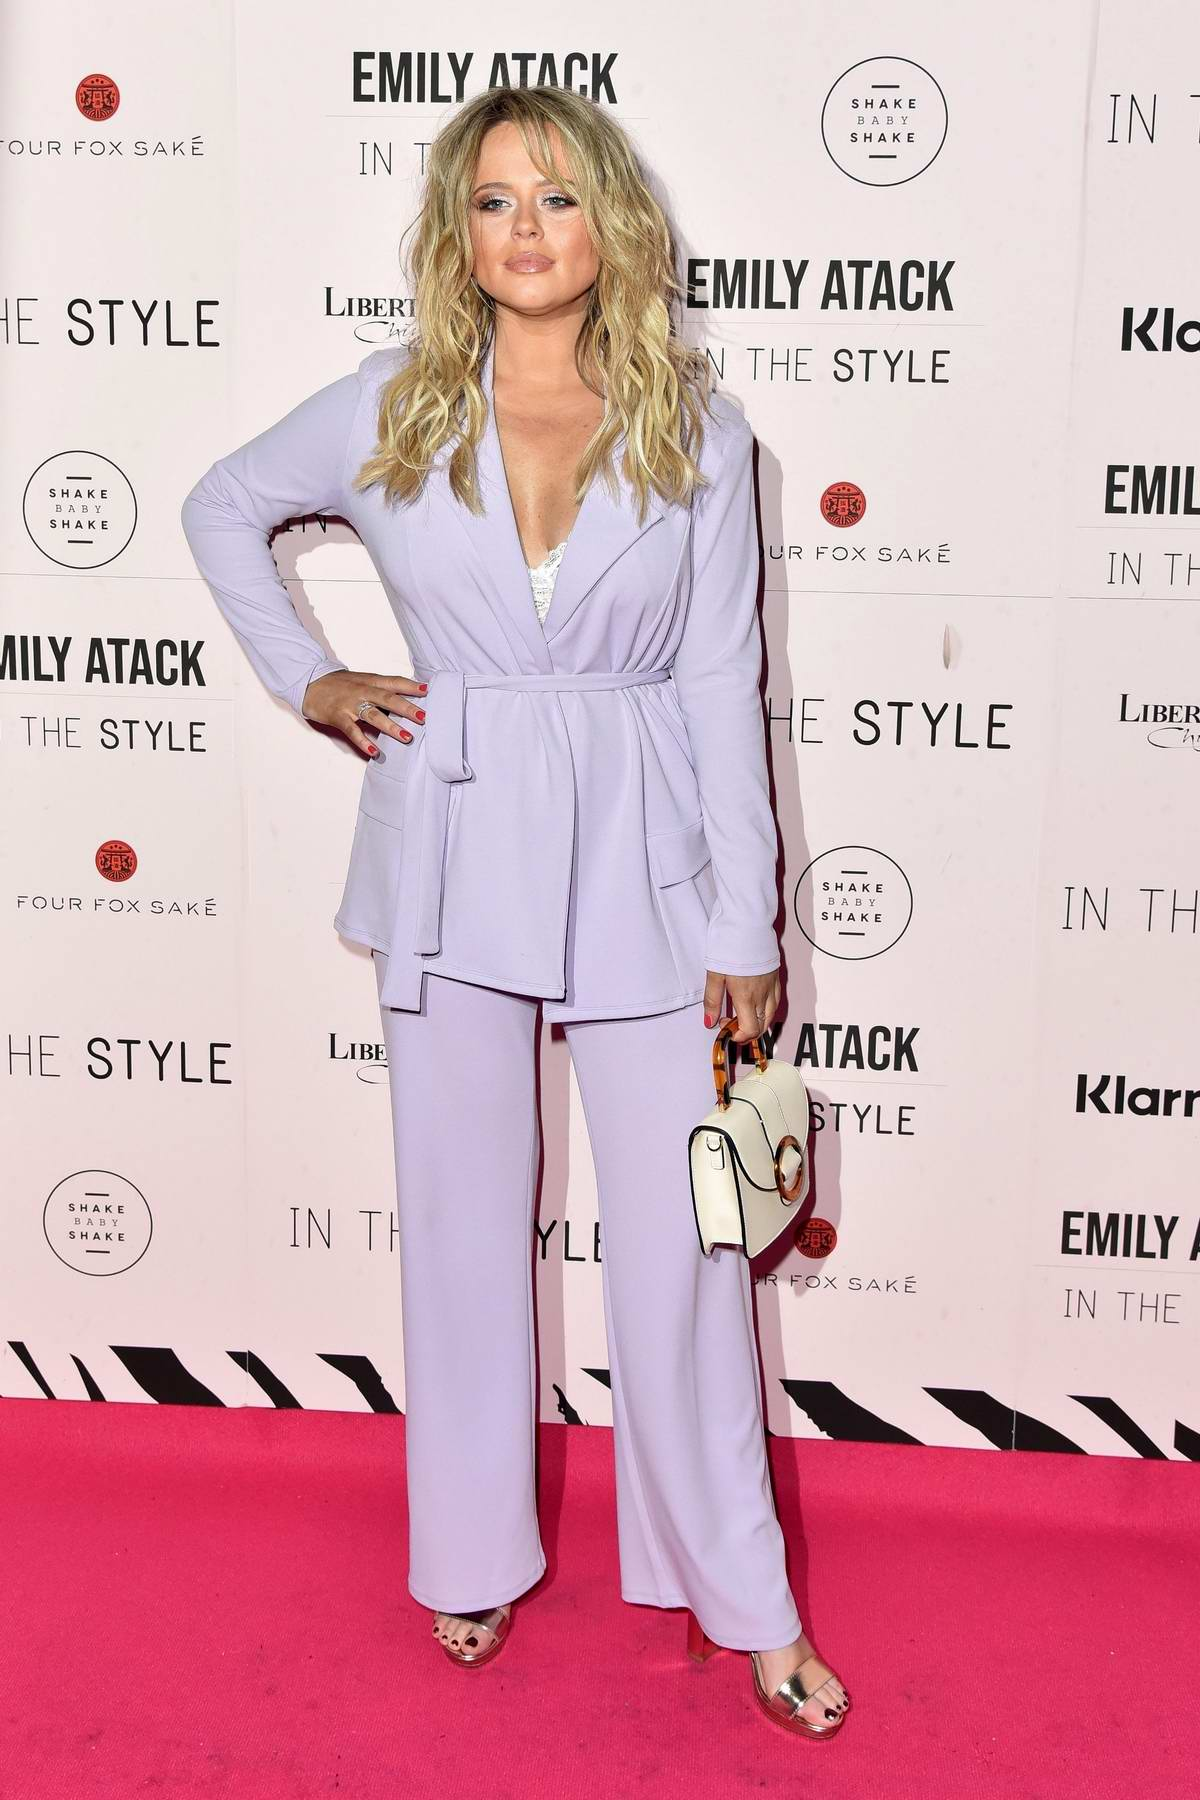 Emily Atack at the Emily Atack x In The Style Launch Party at Libertine in London, UK